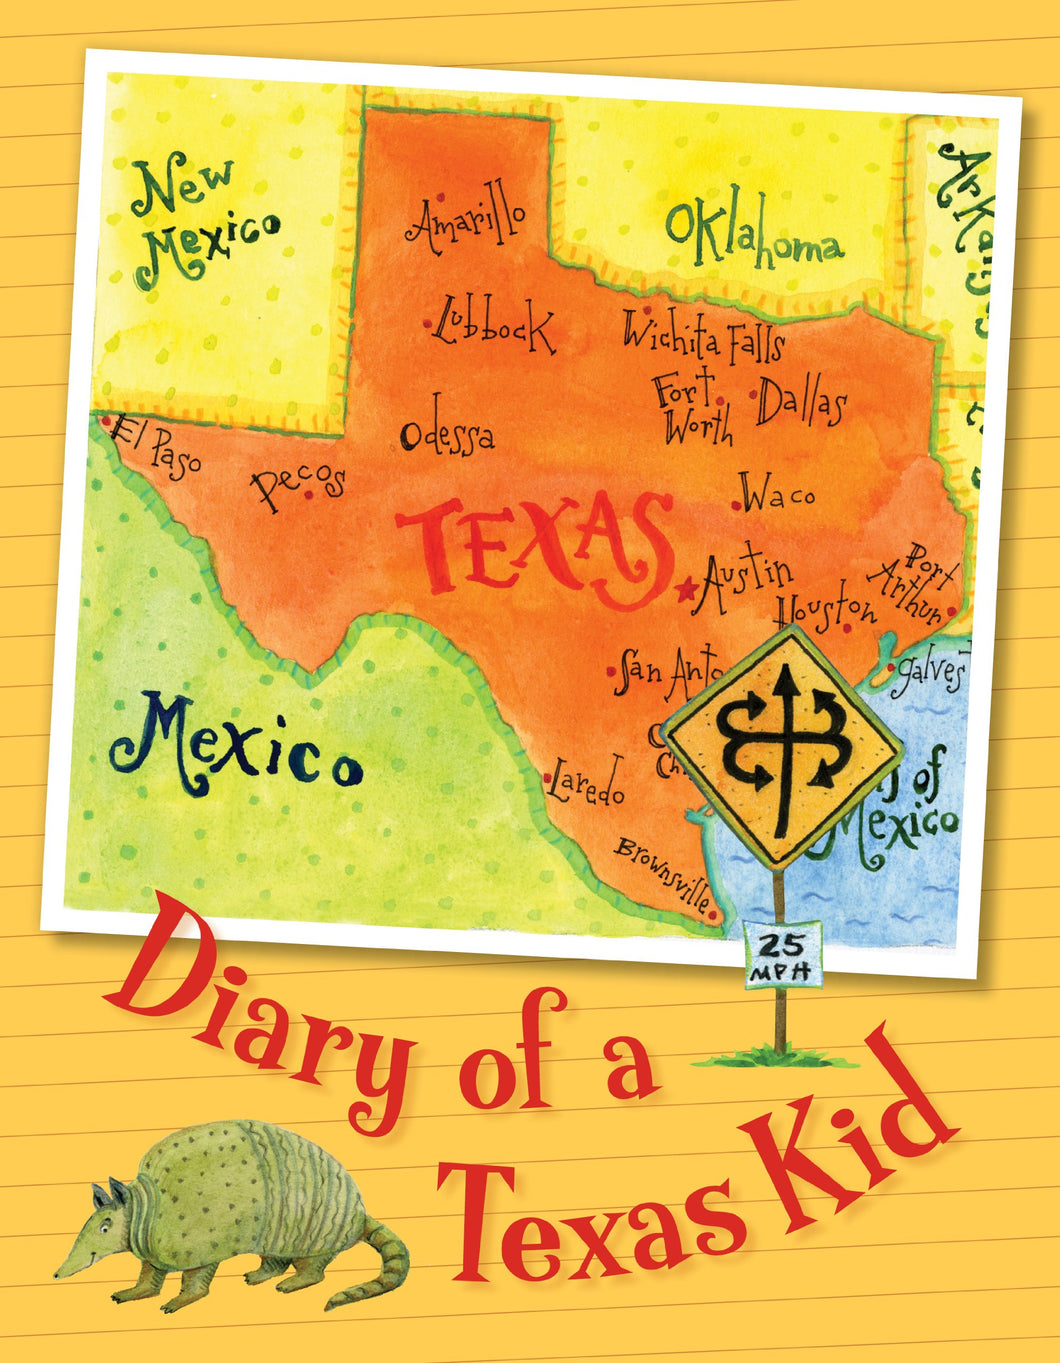 Diary of a Texas Kid (Journal)